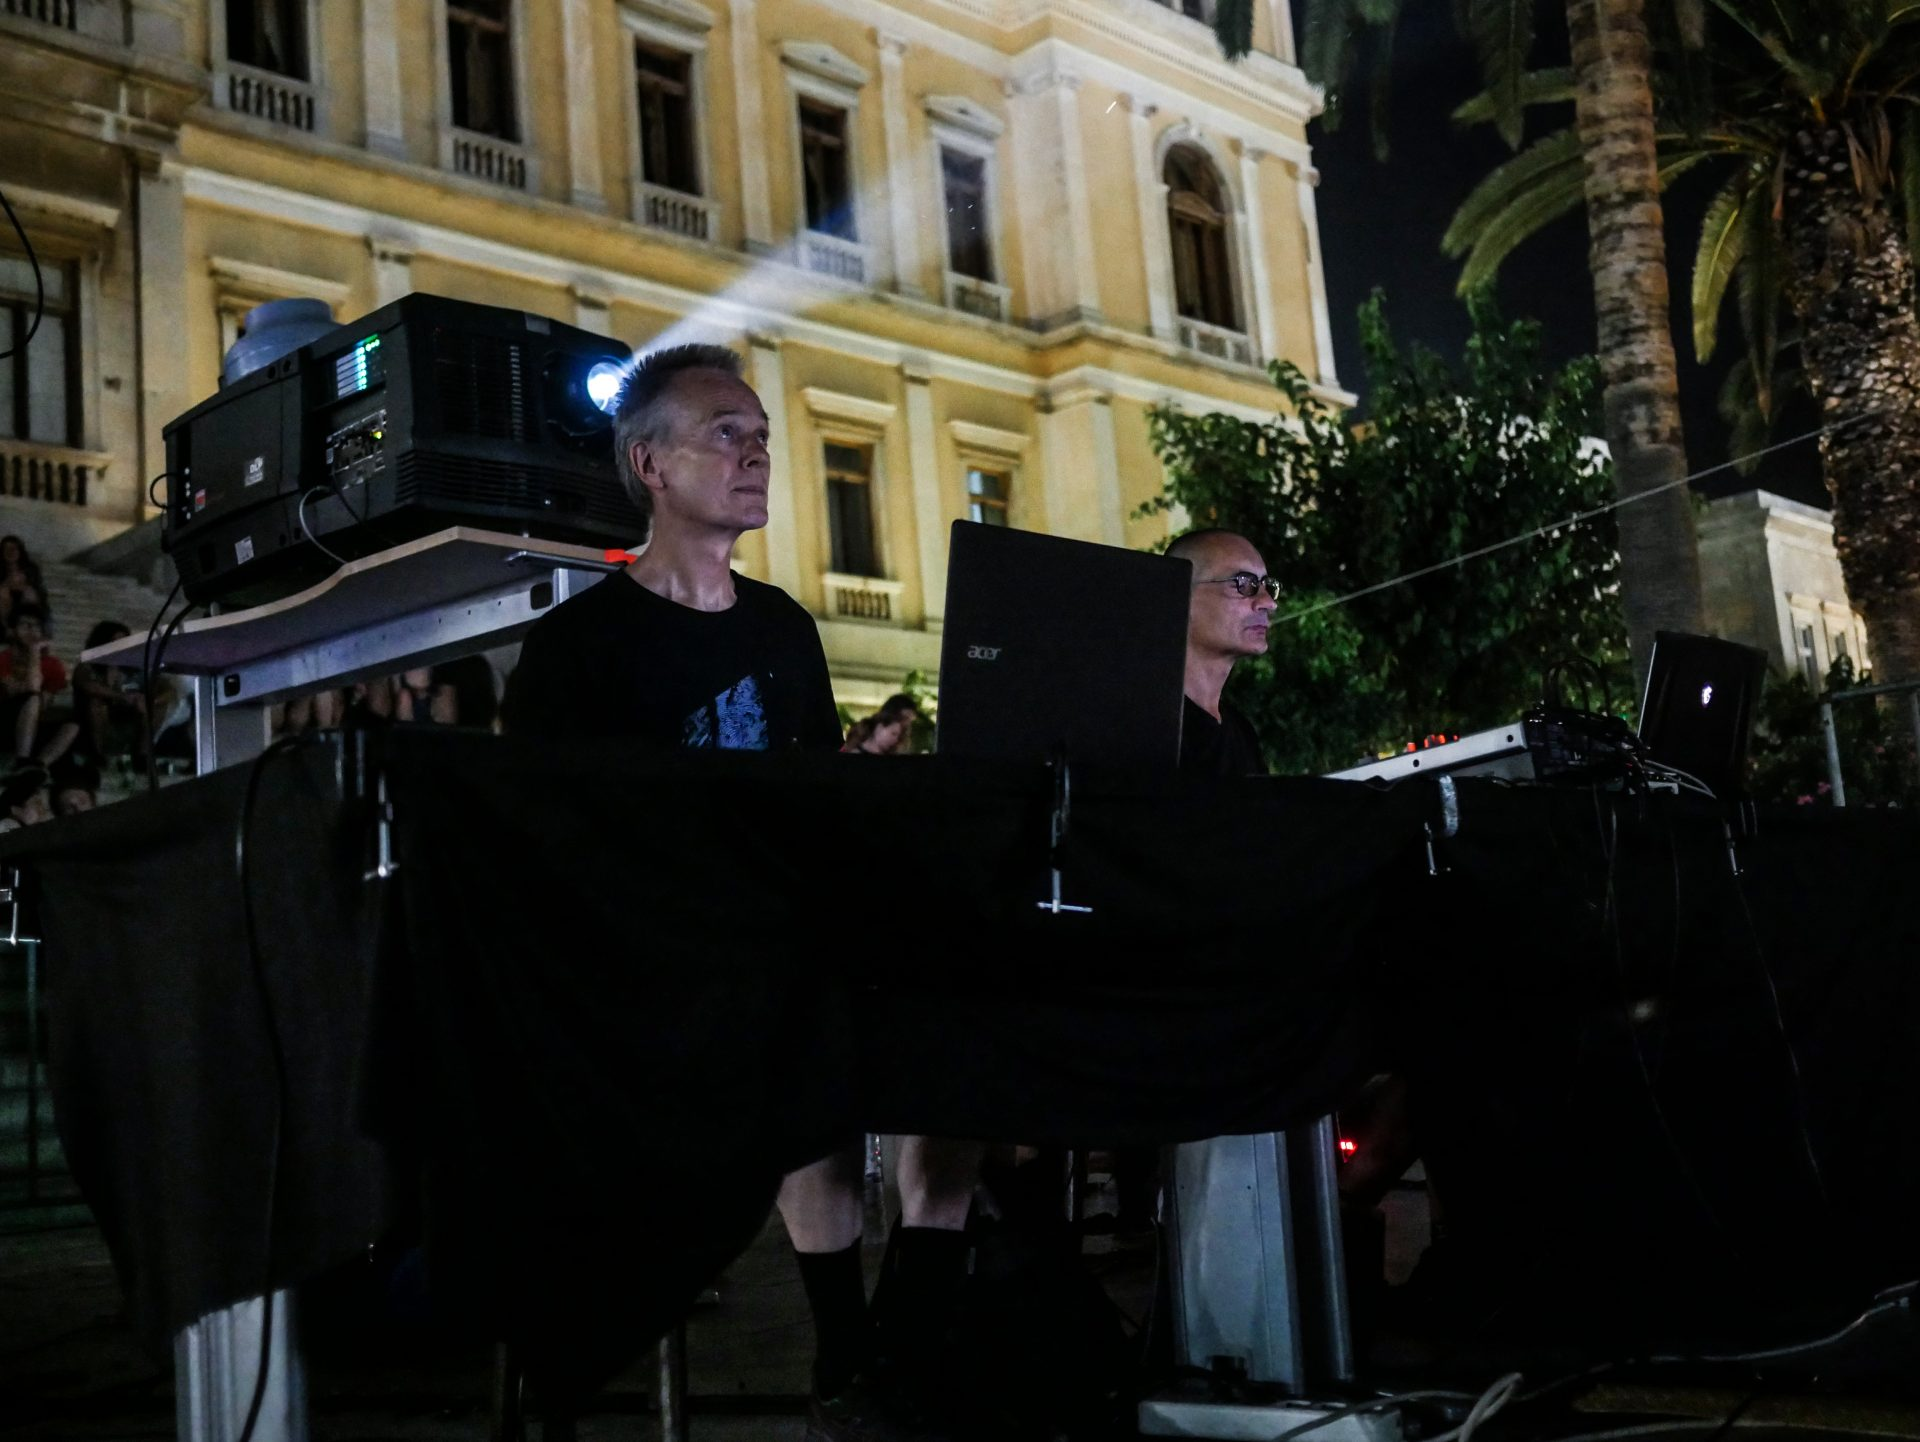 Jürgen Reble and Tomas Khöner performing live at Miaouli Sqauri in 2018 [Photo by Myrto Tzima]